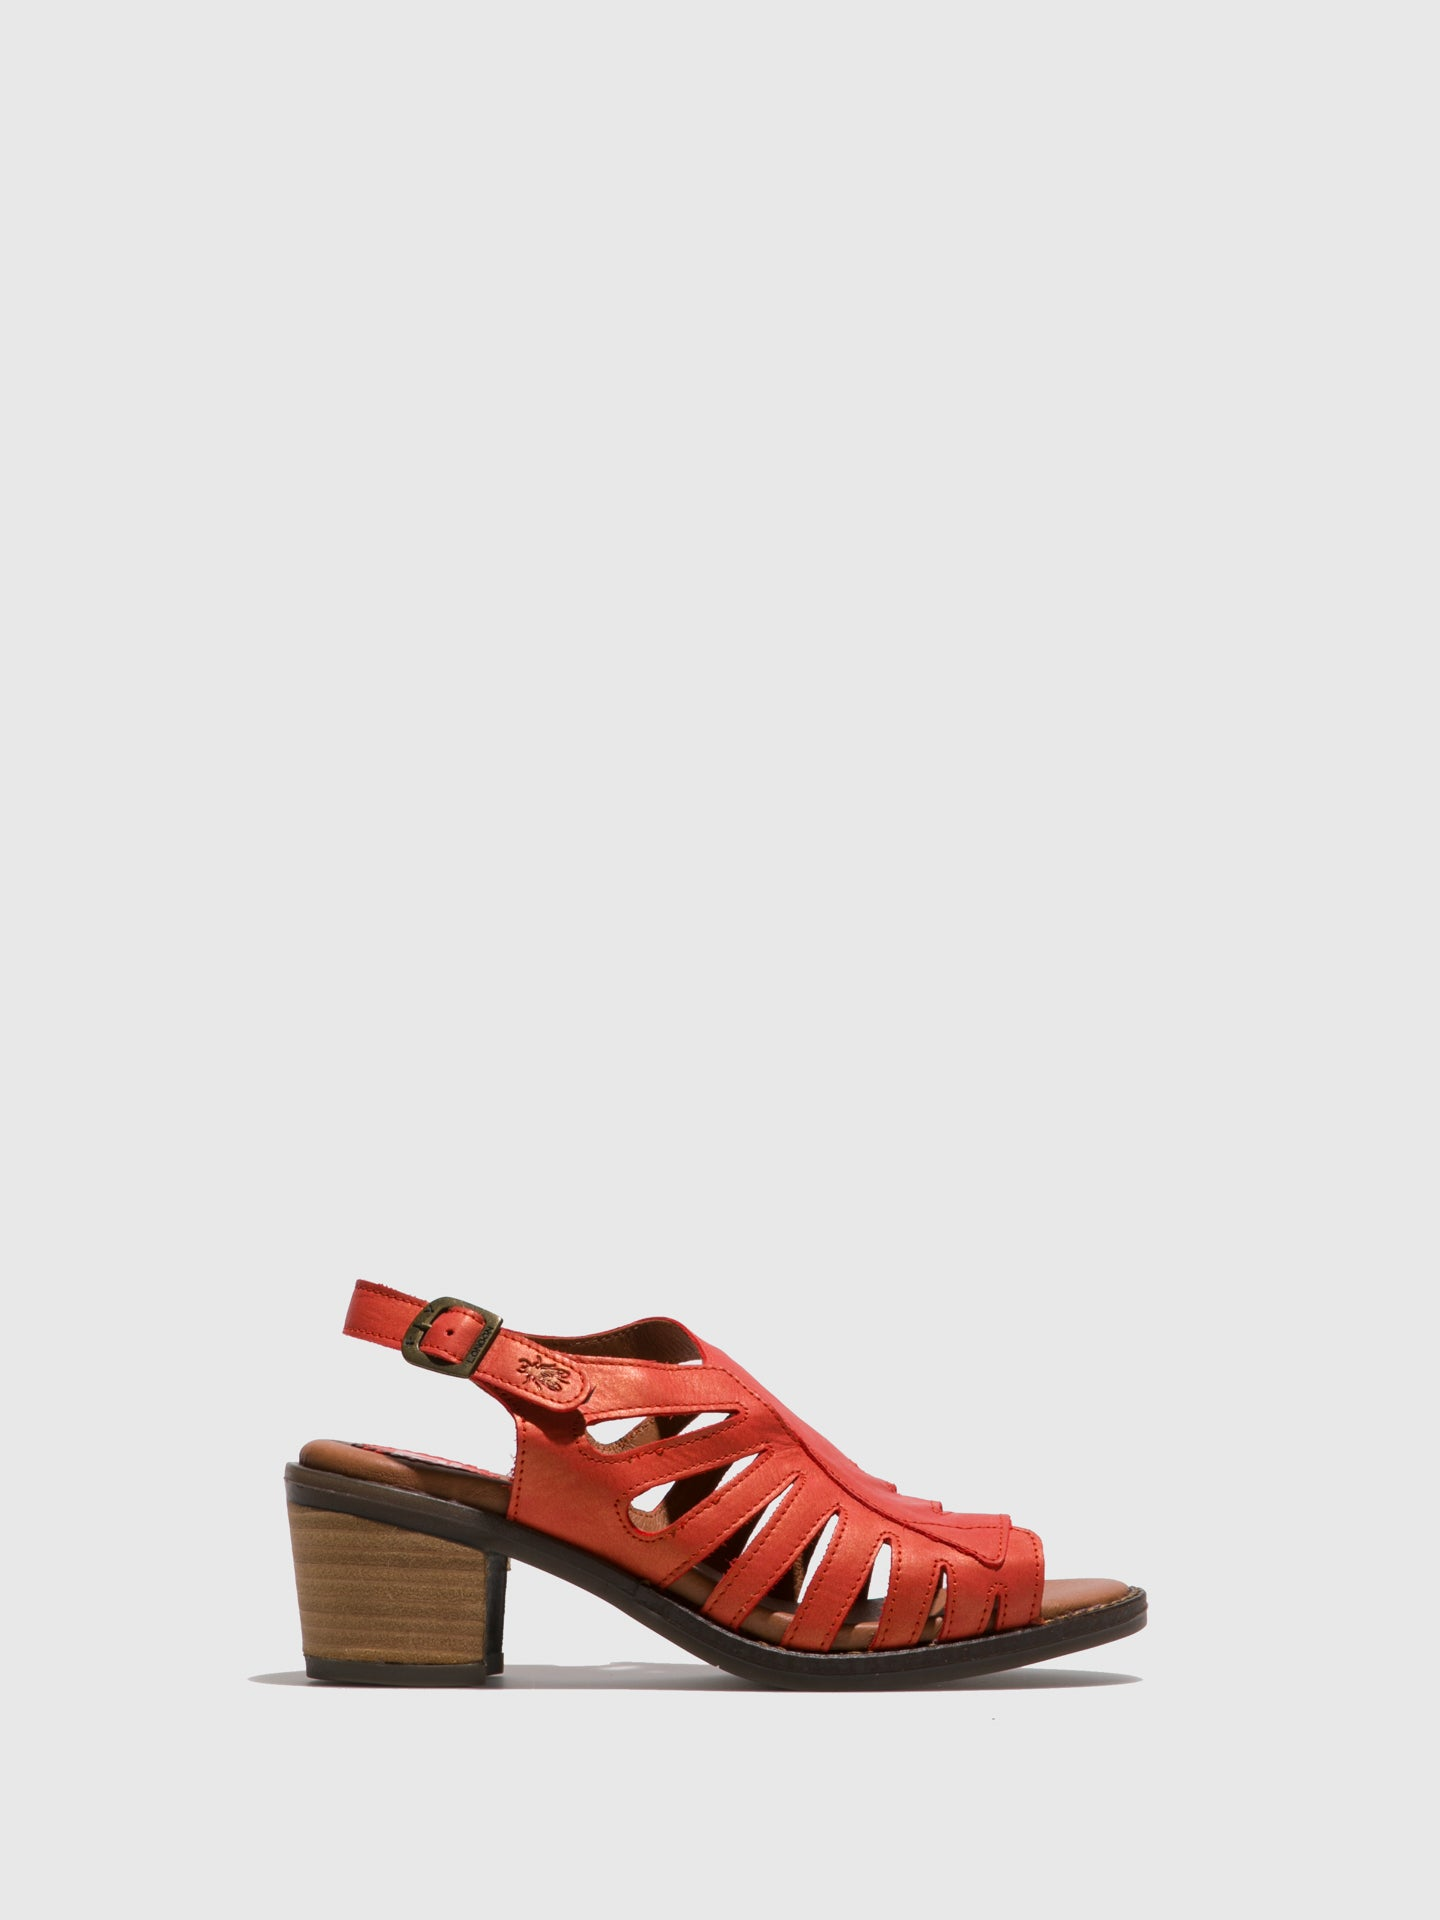 Fly London Orange Open Toe Sandals